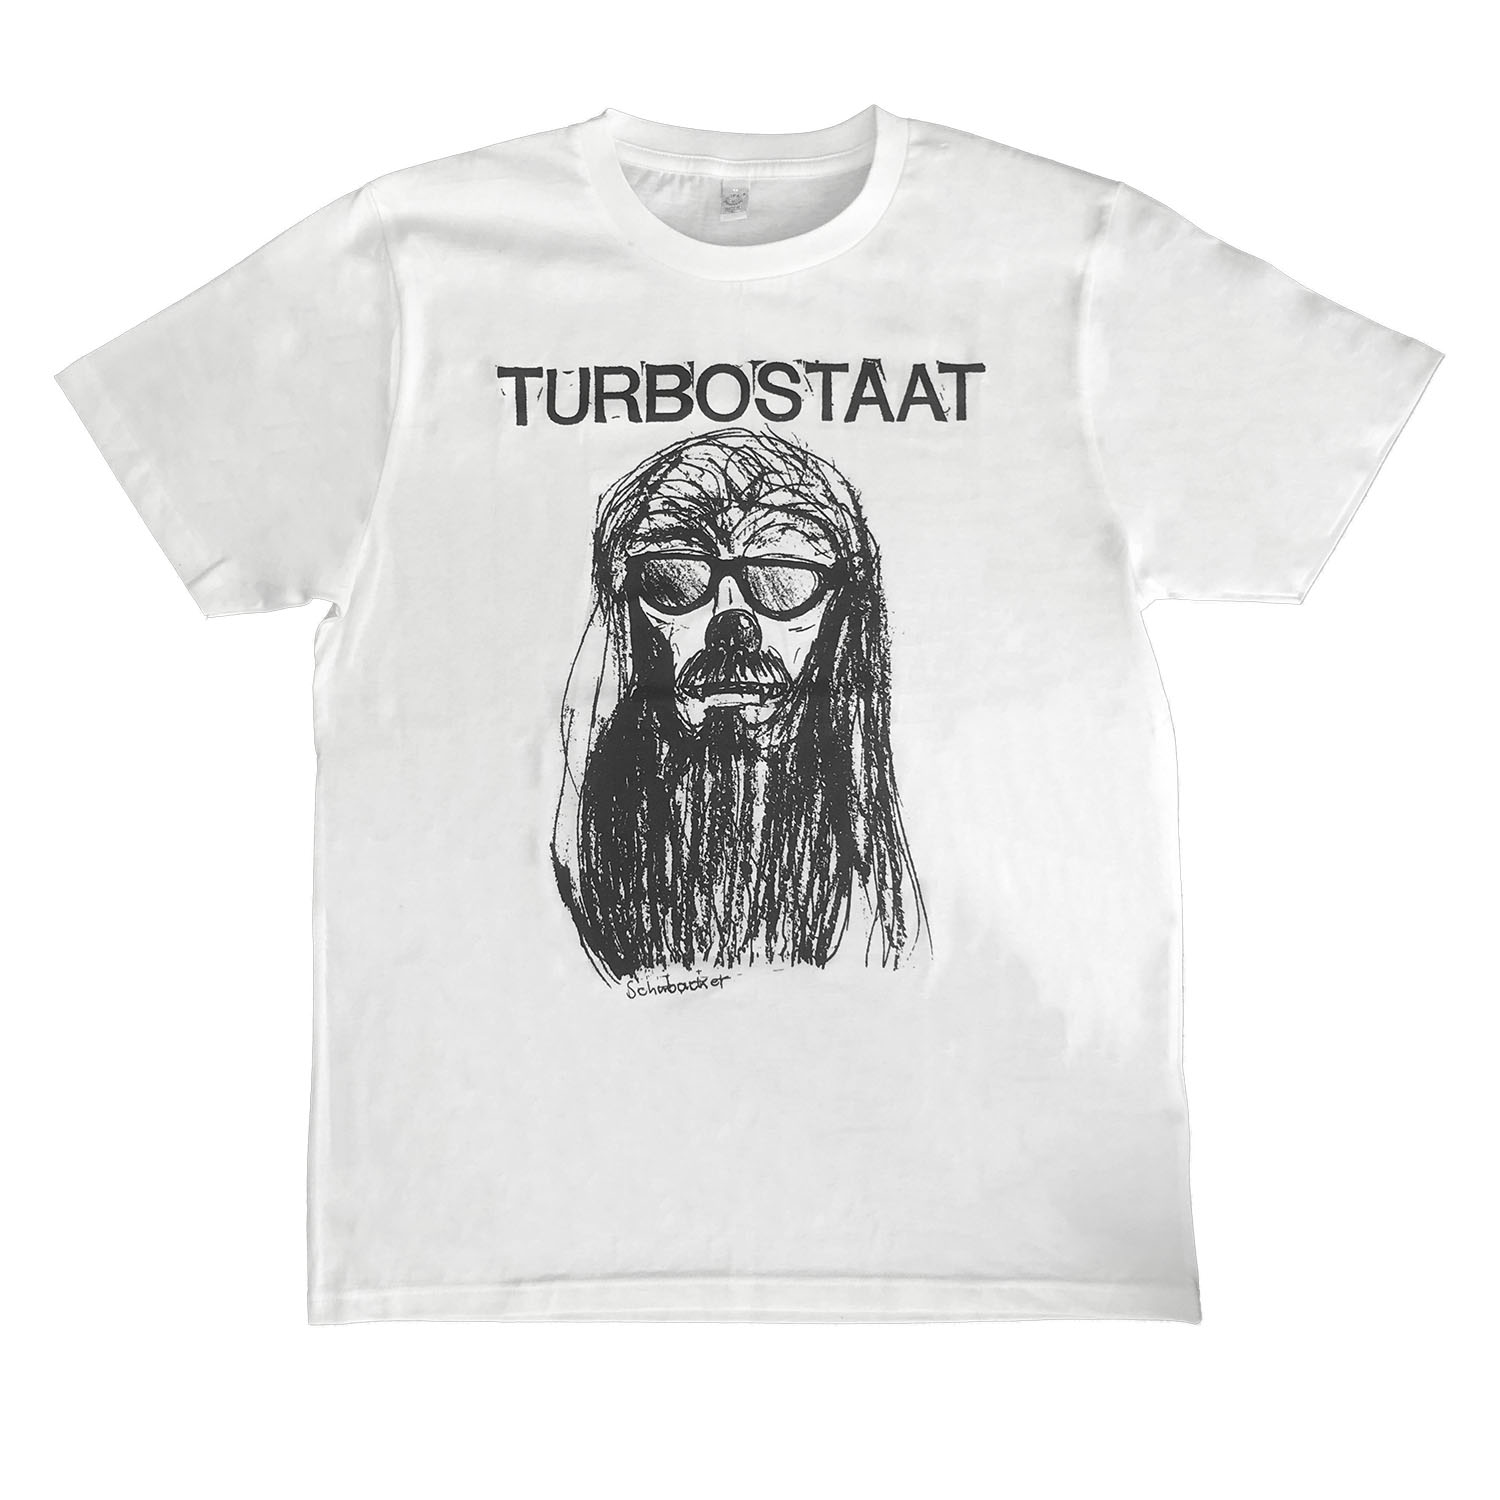 Turbostaat Schubacker T-Shirt, weiß